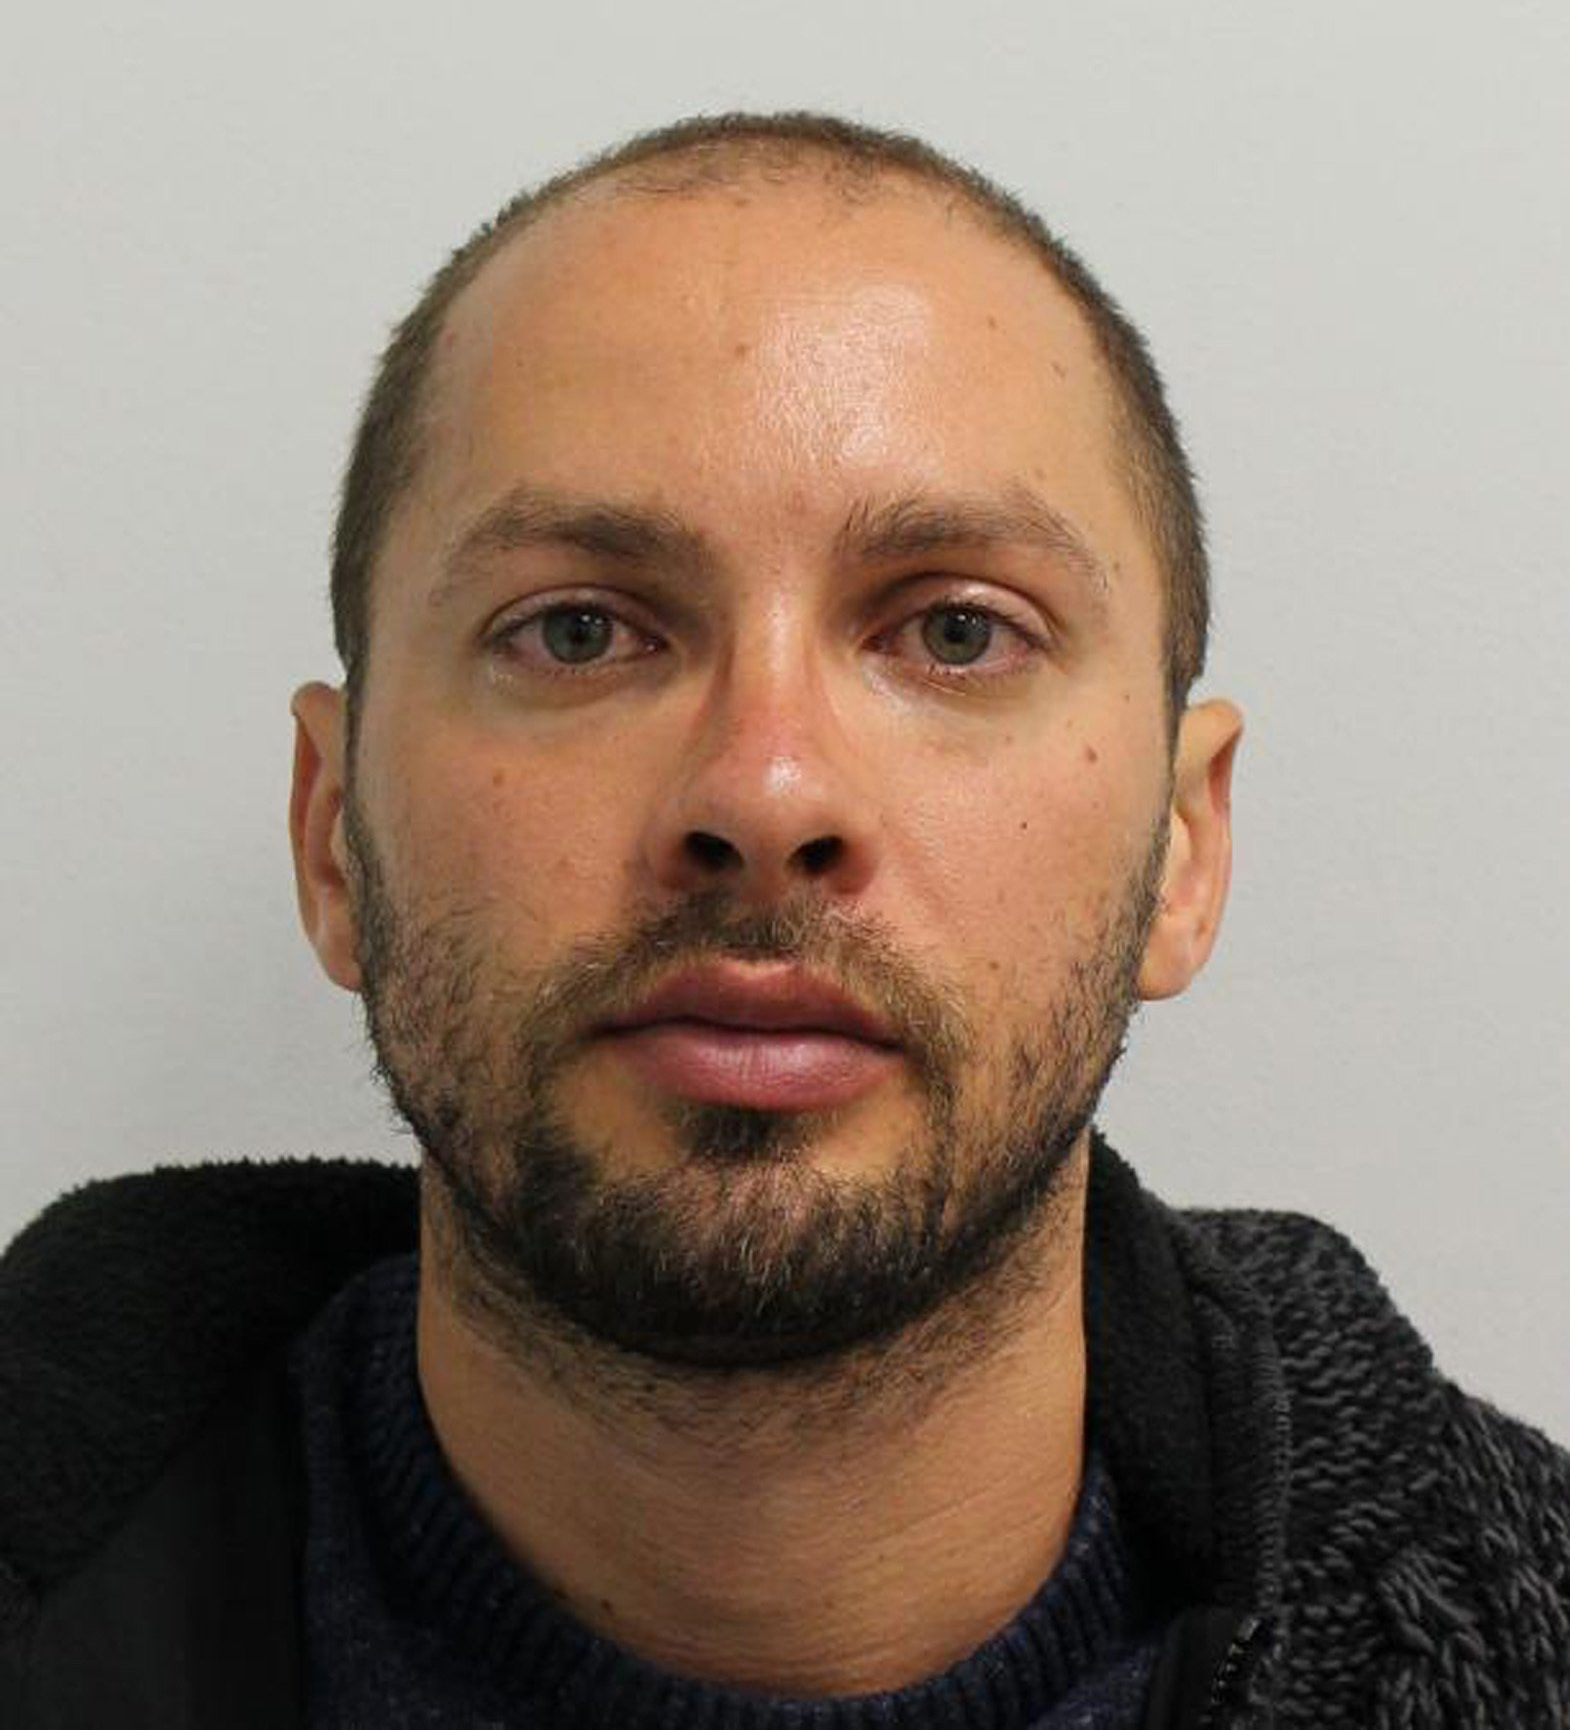 Undated handout photo issued by the Metropolitan Police of Duarte Xavier, who has been convicted at Kingston Crown Court after he tricked four men into having sex with him in the mistaken belief that he was a female. PRESS ASSOCIATION Photo. Issue date: Friday November 9, 2018. See PA story COURTS Xavier. Photo credit should read: Metropolitan Police/PA Wire NOTE TO EDITORS: This handout photo may only be used in for editorial reporting purposes for the contemporaneous illustration of events, things or the people in the image or facts mentioned in the caption. Reuse of the picture may require further permission from the copyright holder.